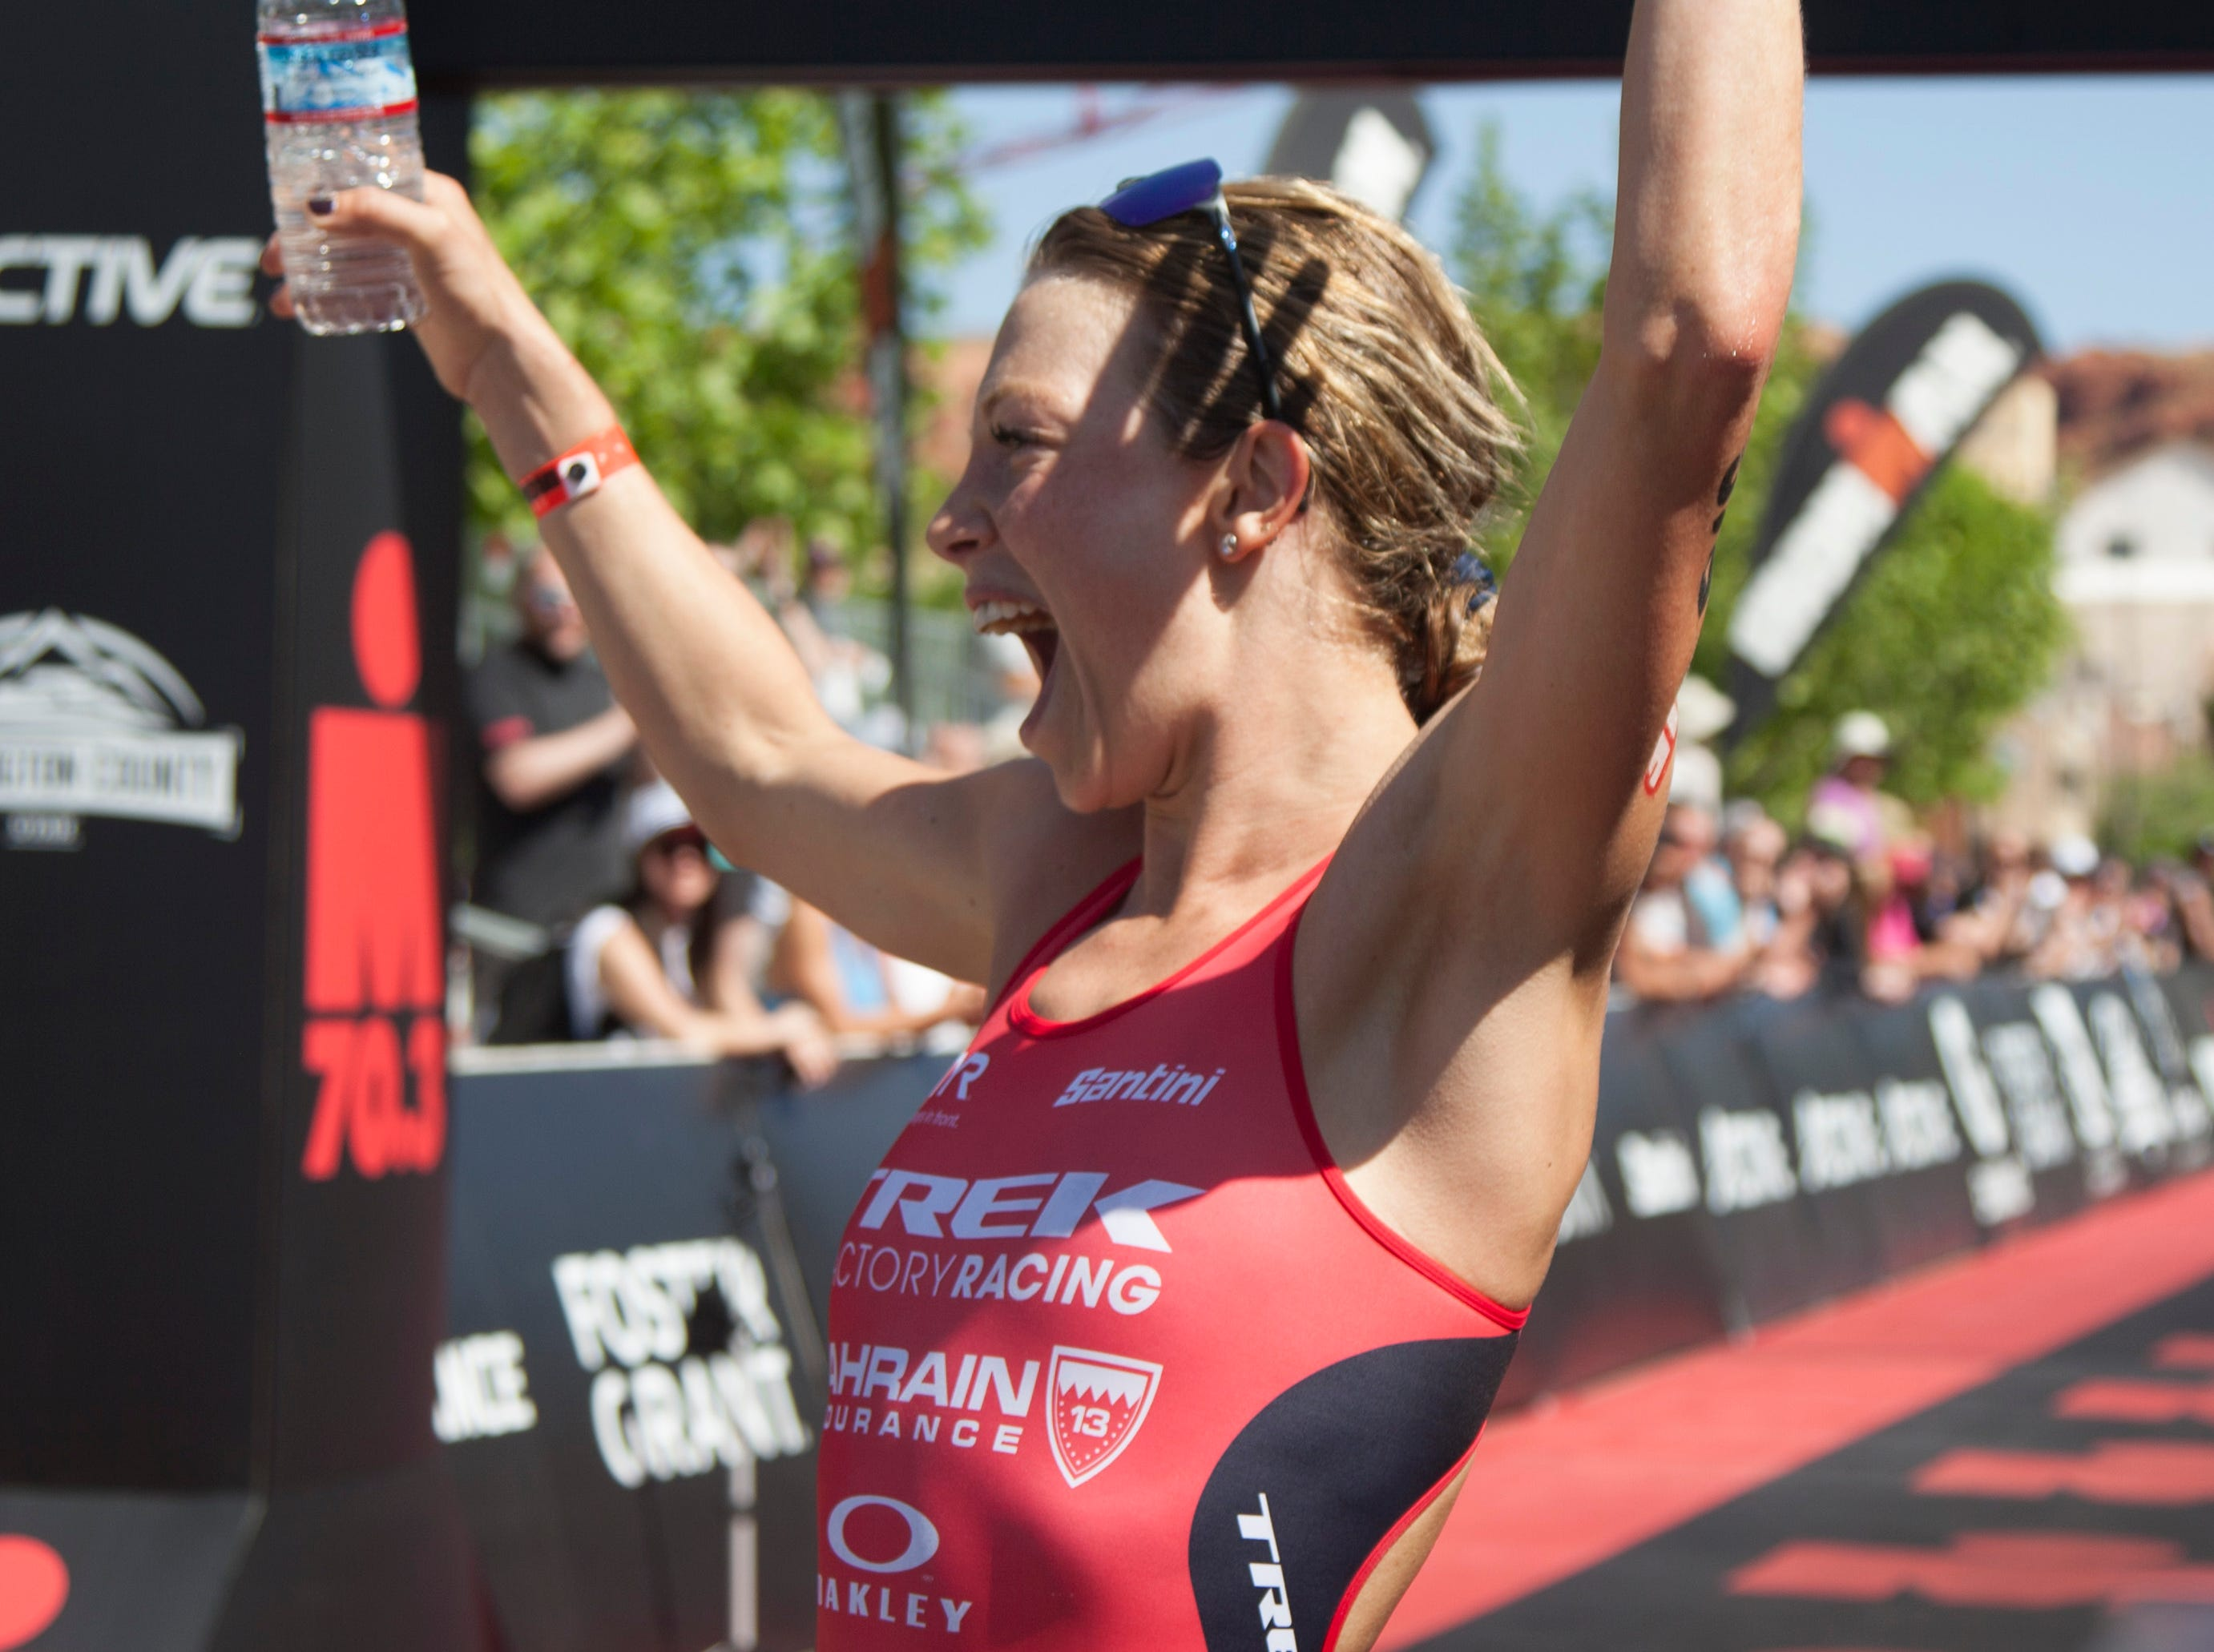 Holly Lawrence reacts to hearing she set a new course record at the St. George Ironman Saturday, May 4, 2019.